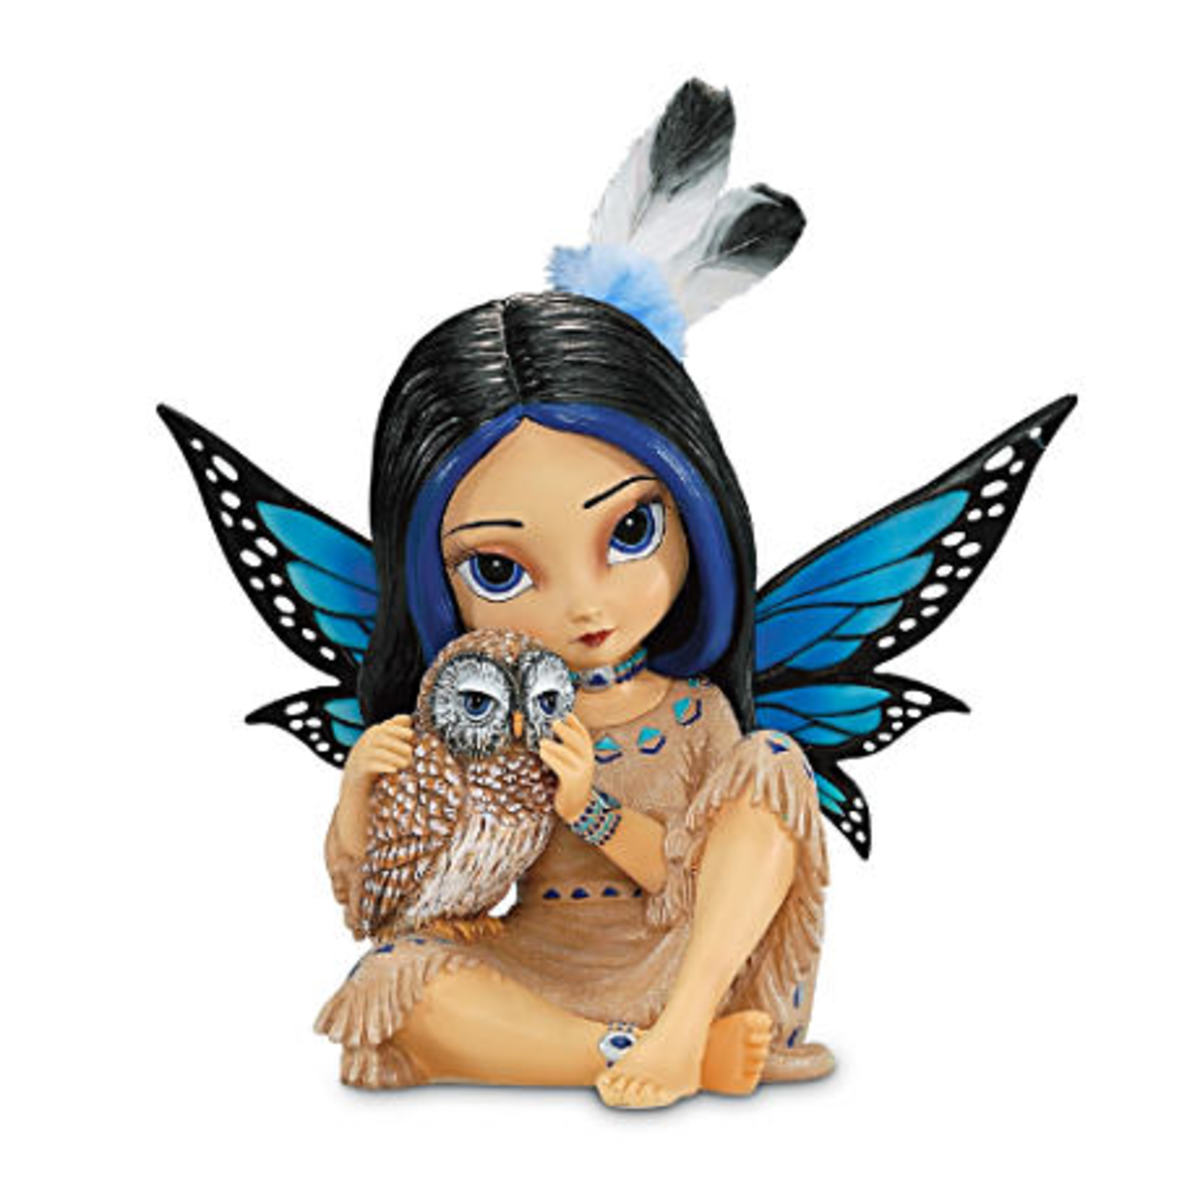 Native American Fairy figurine by Jasmine Becket-Griffith